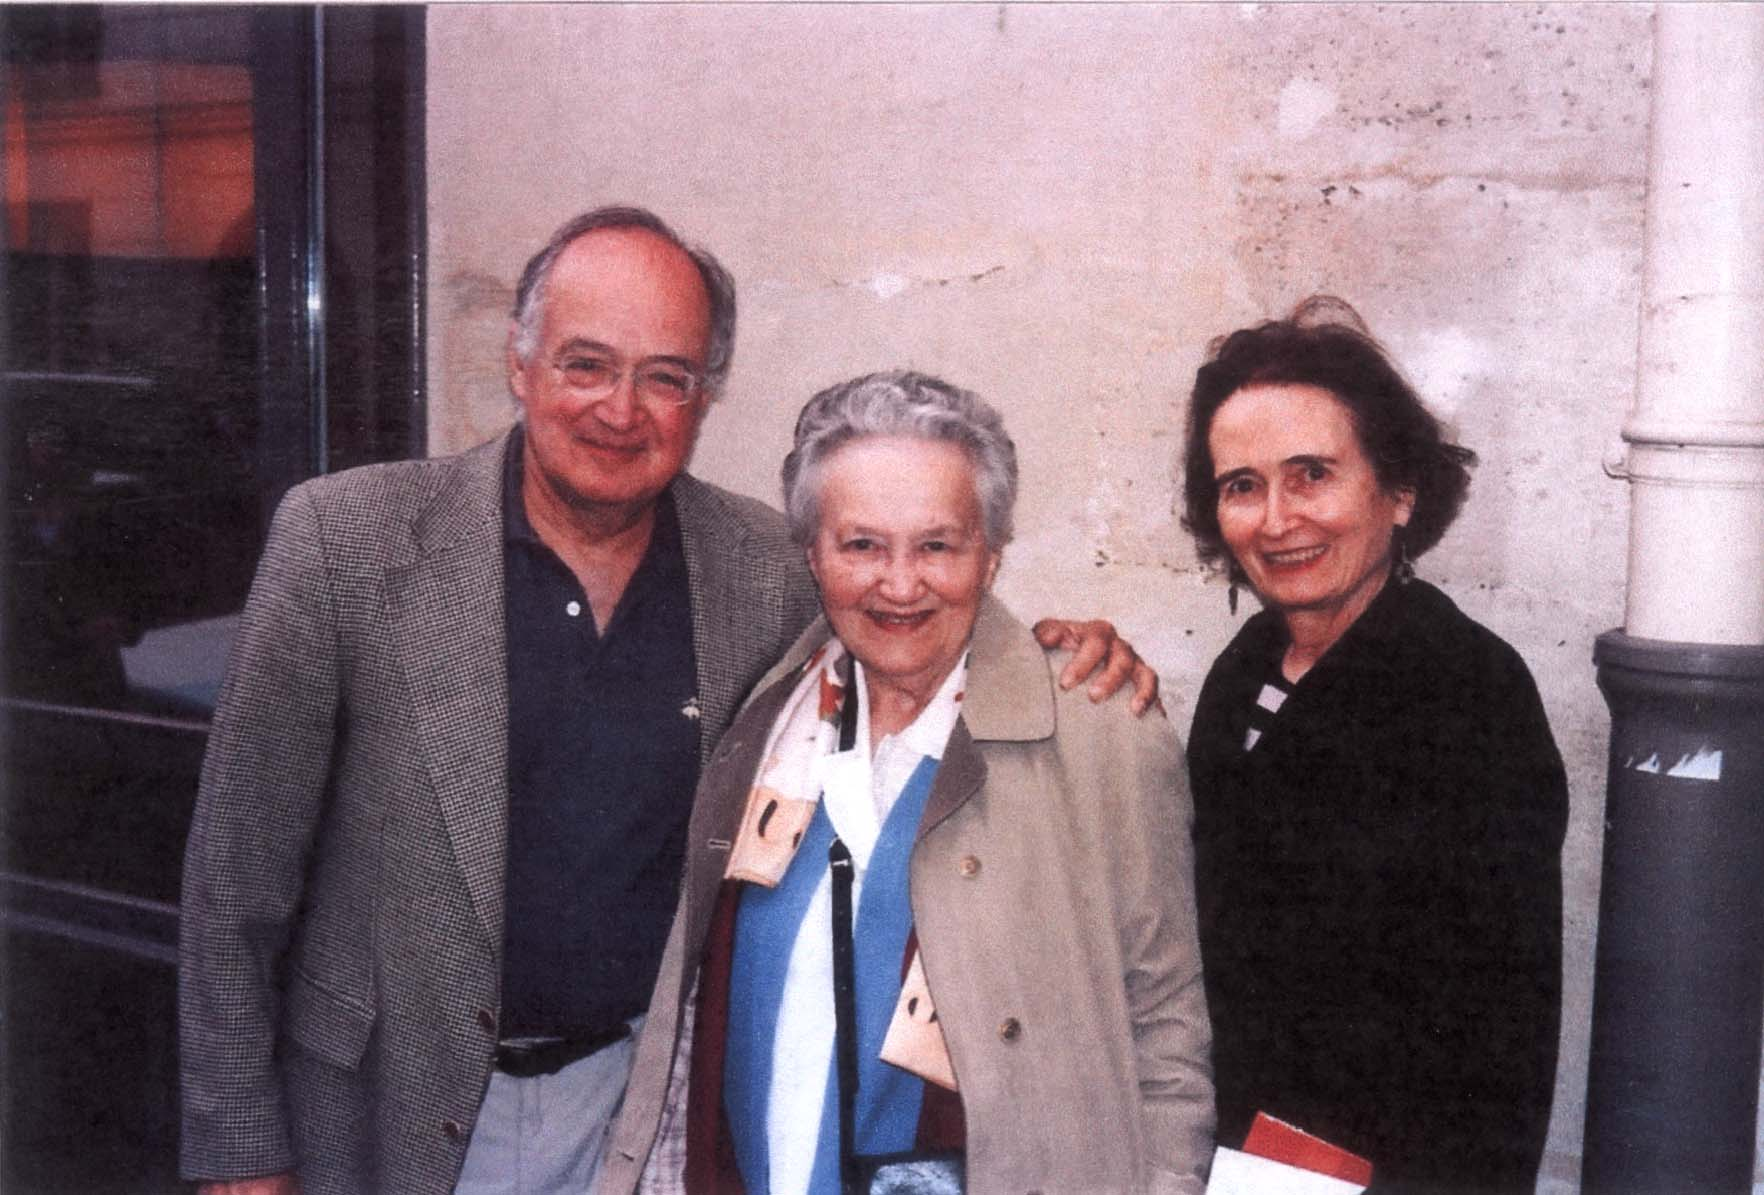 Yvonne Feraud with the rescued Jean-Claude and Denise . 21.05.2005